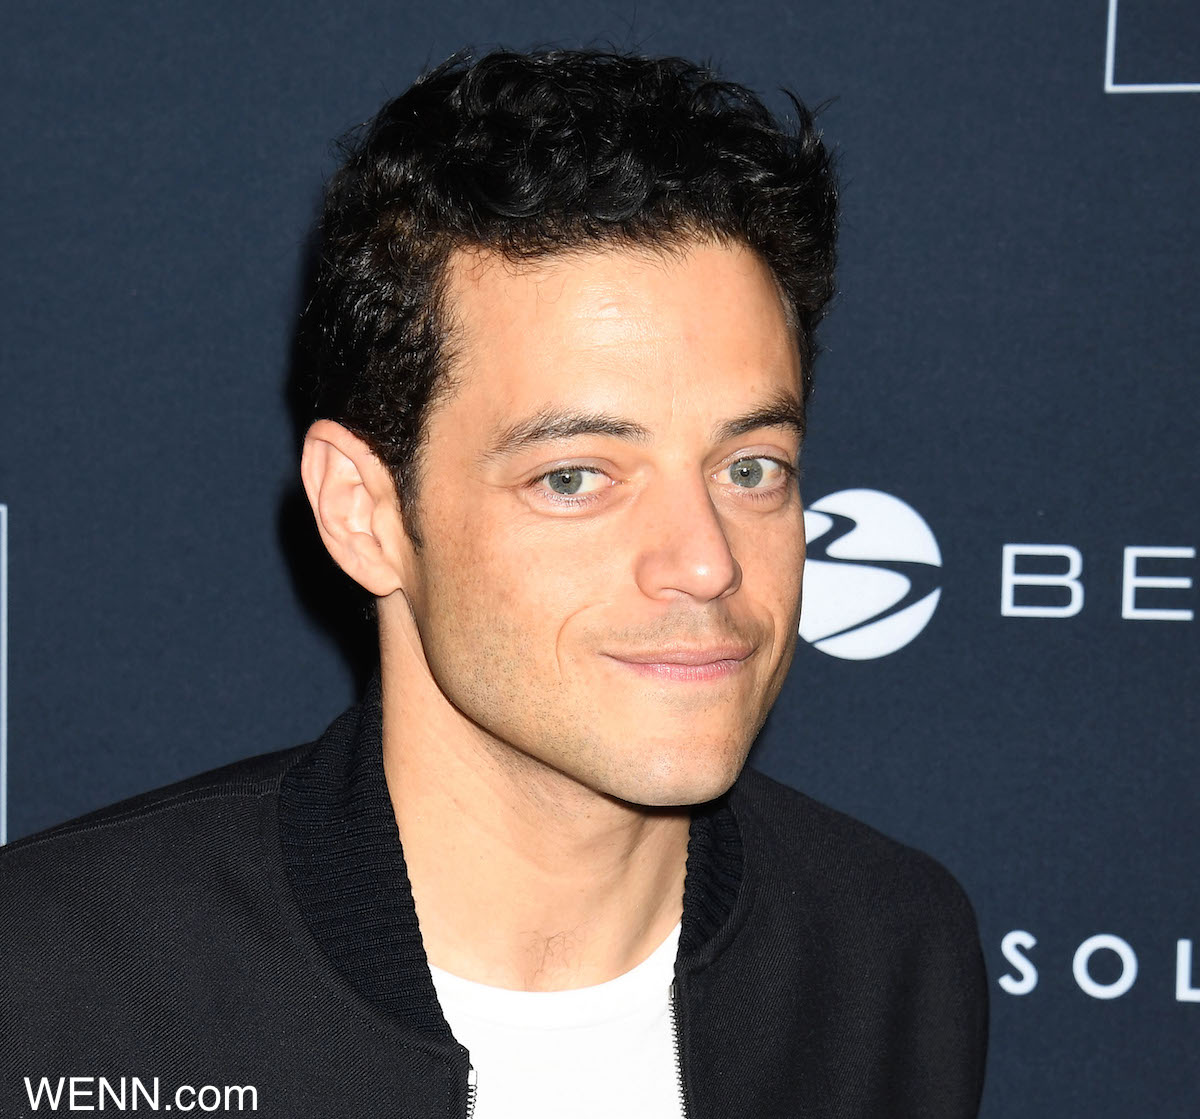 Rami Malek at the Go Campaign's 13th Annual Go Gala at NeueHouse Hollywood on November 16, 2019 in Los Angeles, California. Photograph: © Joe Sutter/PacificCoastNews. Los Angeles Office (PCN): +1 310.822.0419 UK Office (Avalon): +44 (0) 20 7421 6000 sales@pacificcoastnews.com Where: Hollywood, California, United States When: 16 Nov 2019 Credit: WENN/Avalon **WENN/Avalon**